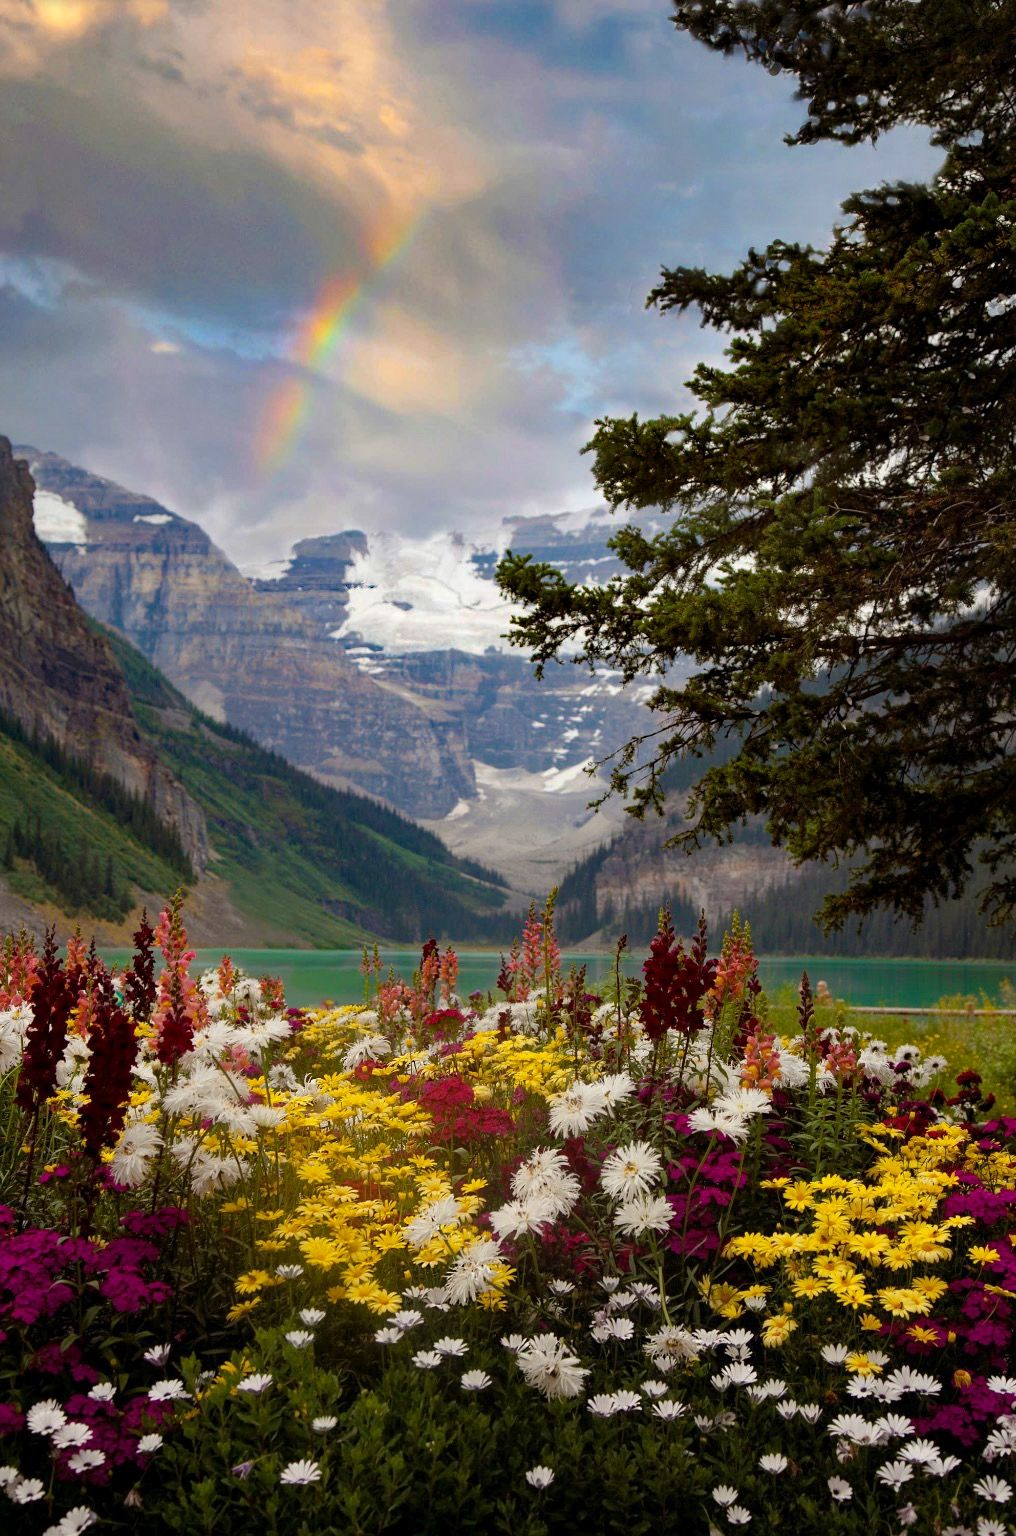 Lake Louise At Banff National Park In Alberta Canada Best Time To Visit